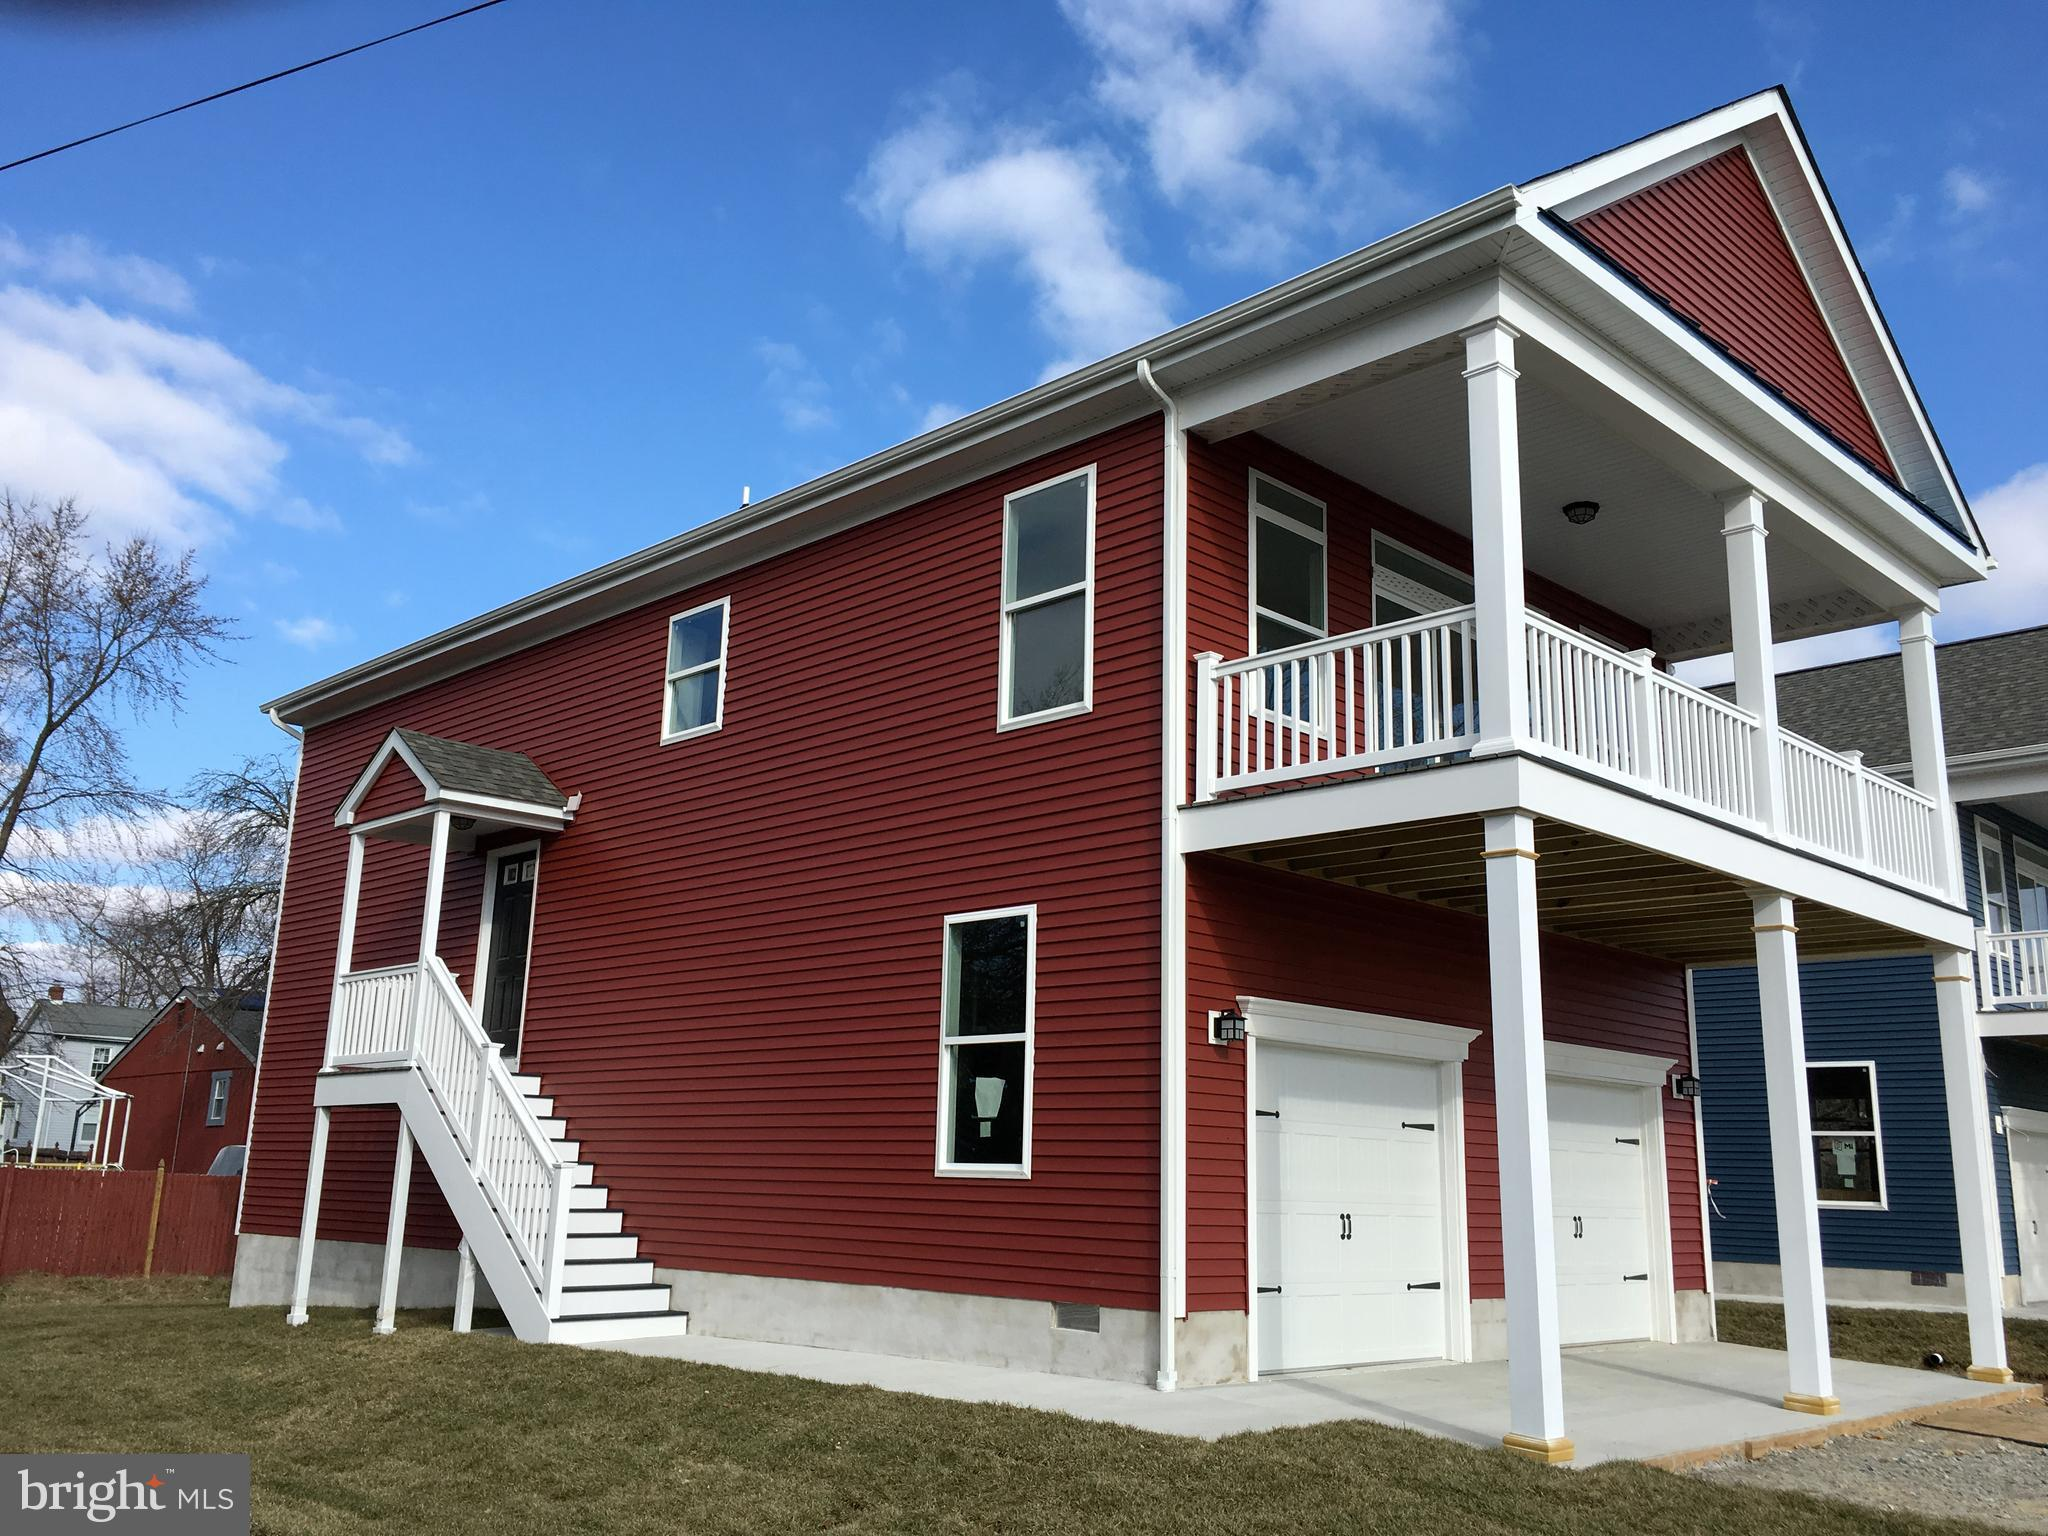 """Quick Delivery - New Construction with water view of the Branch Canal, Public Marina and Fort DuPont. Beautifully designed Cottage Style Home with single floor living on upper level including  covered porch for outdoor living area. 3 bedroom, 2 1/2 bath with Great Room / Kitchen / Dining combination with 9' ceiling height & trey ceiling. Oversized two car garage includes storage closets. Home is nearing completion with quick delivery possibilities. Upgraded features include; 42"""" white cabinets & vanities, granite counter tops, oak stairs & railings, LVP Flooring, Ceramic tile floor and shower in owners bedroom, composite decking, vinyl porch post & railings and much more. Community includes the Delaware River, Branch Canal, Restaurants, Public Marina, Historic Main Street District, Hiking trails,  Battery Park and Fort DuPont all within walking distance of your front door."""